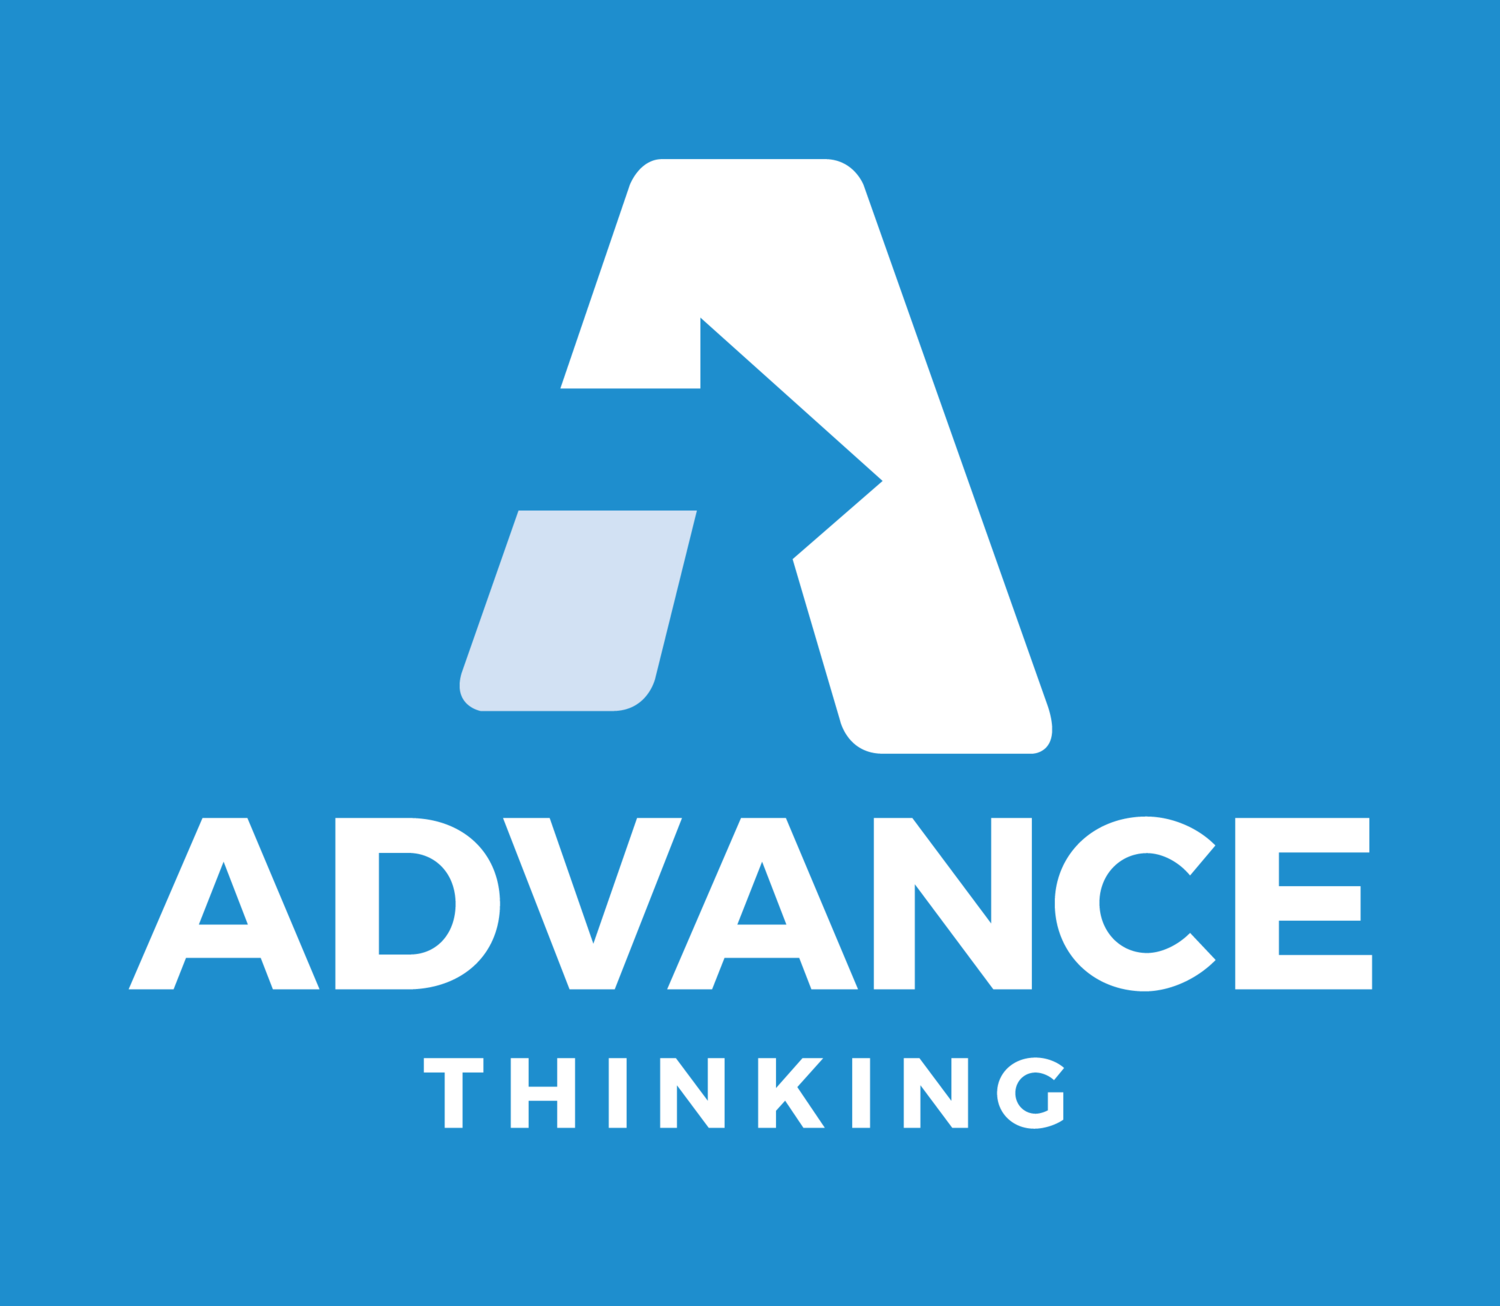 Advance Thinking